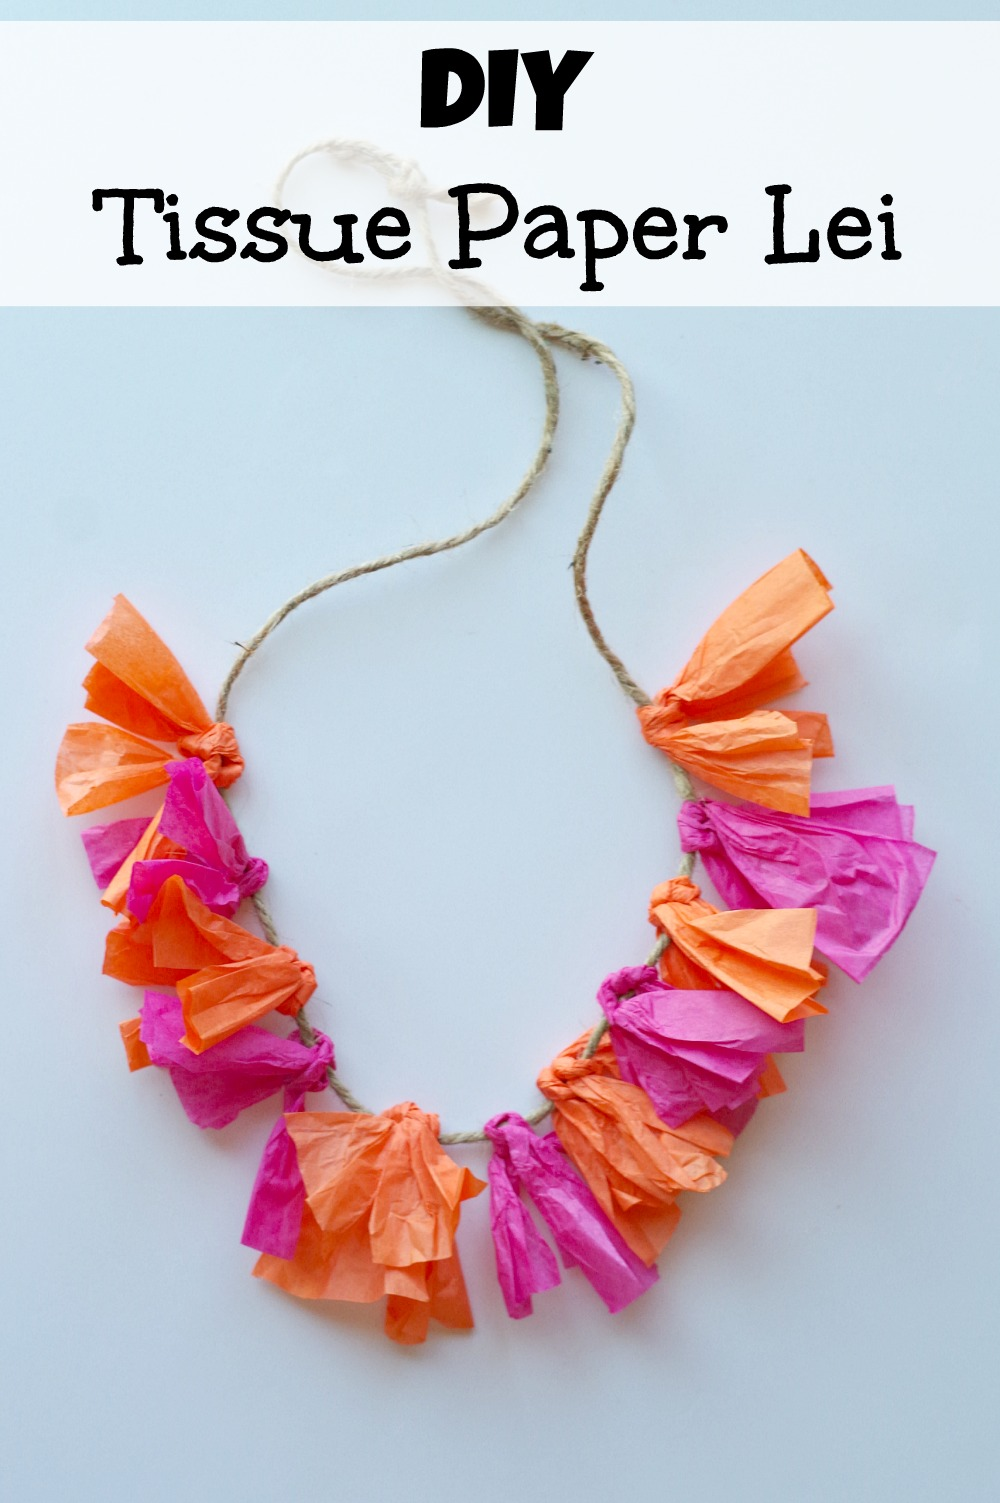 Lei Can Be Made With Construction Paper Yarn Solid: Quick & Easy Way To Make A Tissue Paper Lei